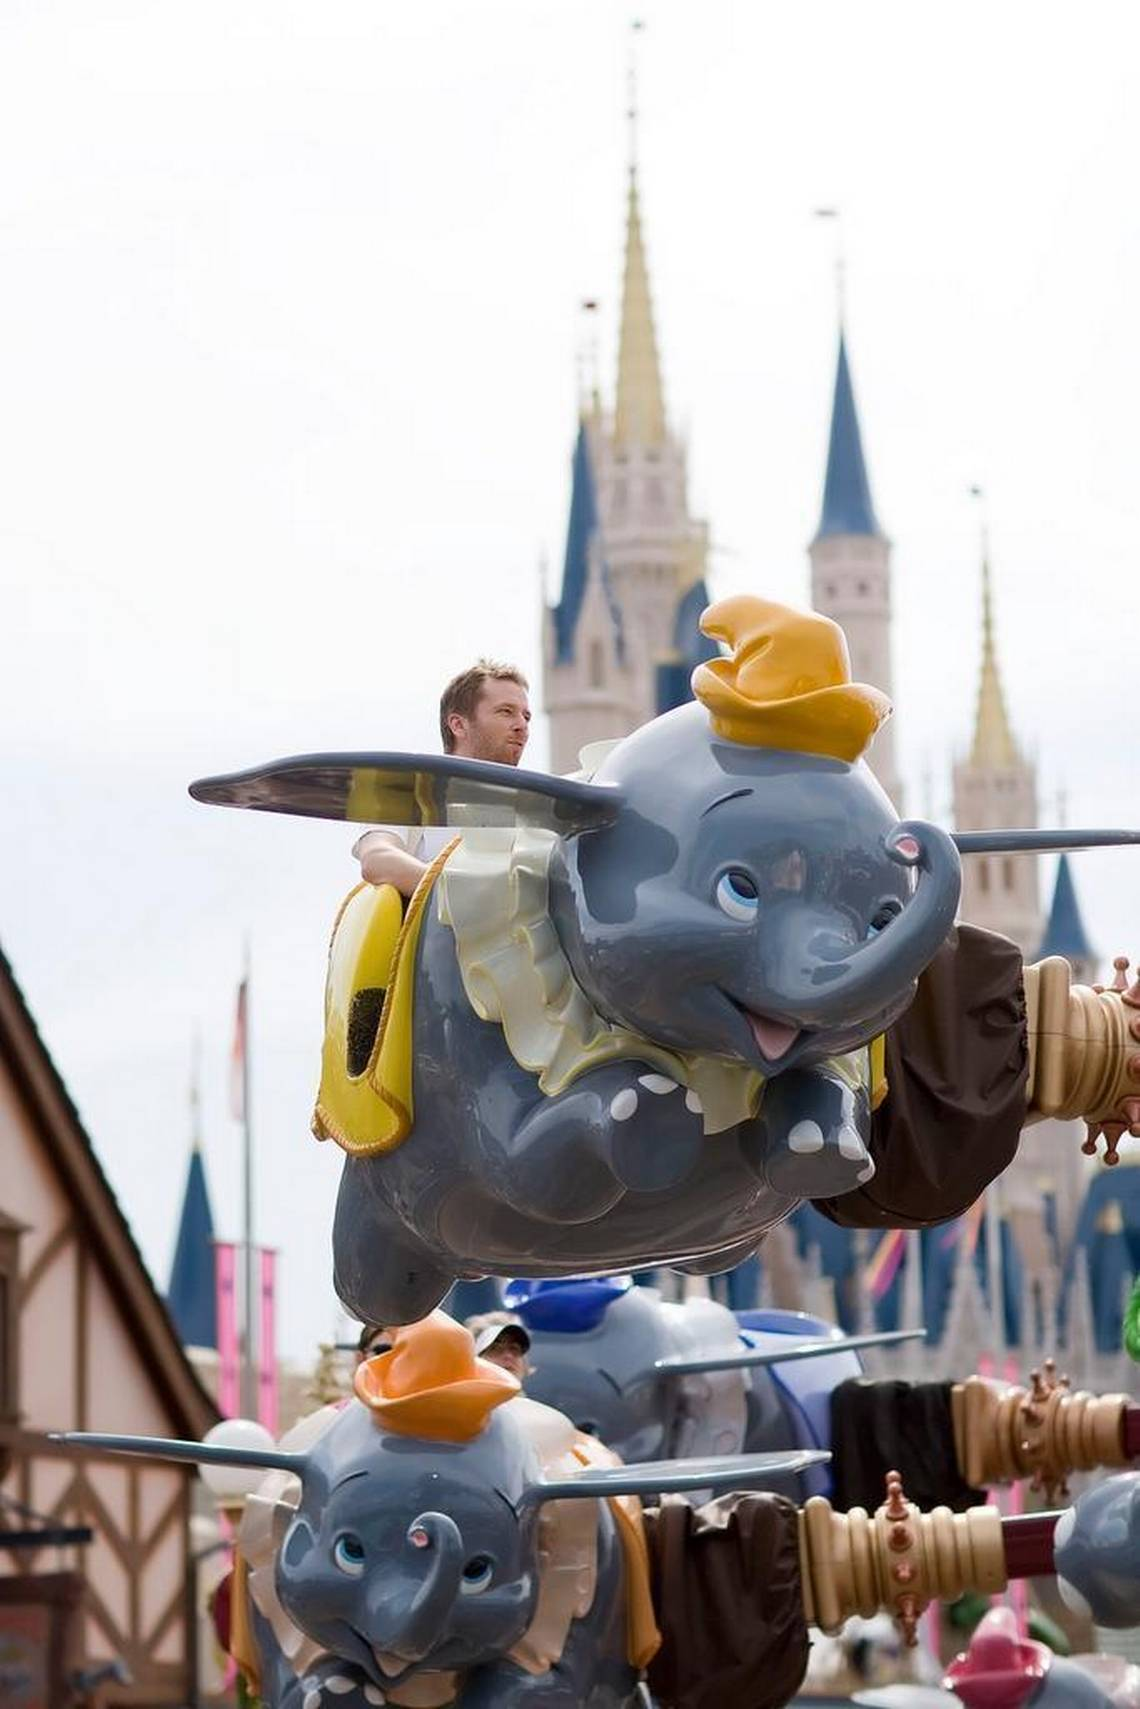 Guests ride on the Dumbo the Elephant attraction at the Walt Disney World Magic Kingdom in Orlando, Florida, U.S.